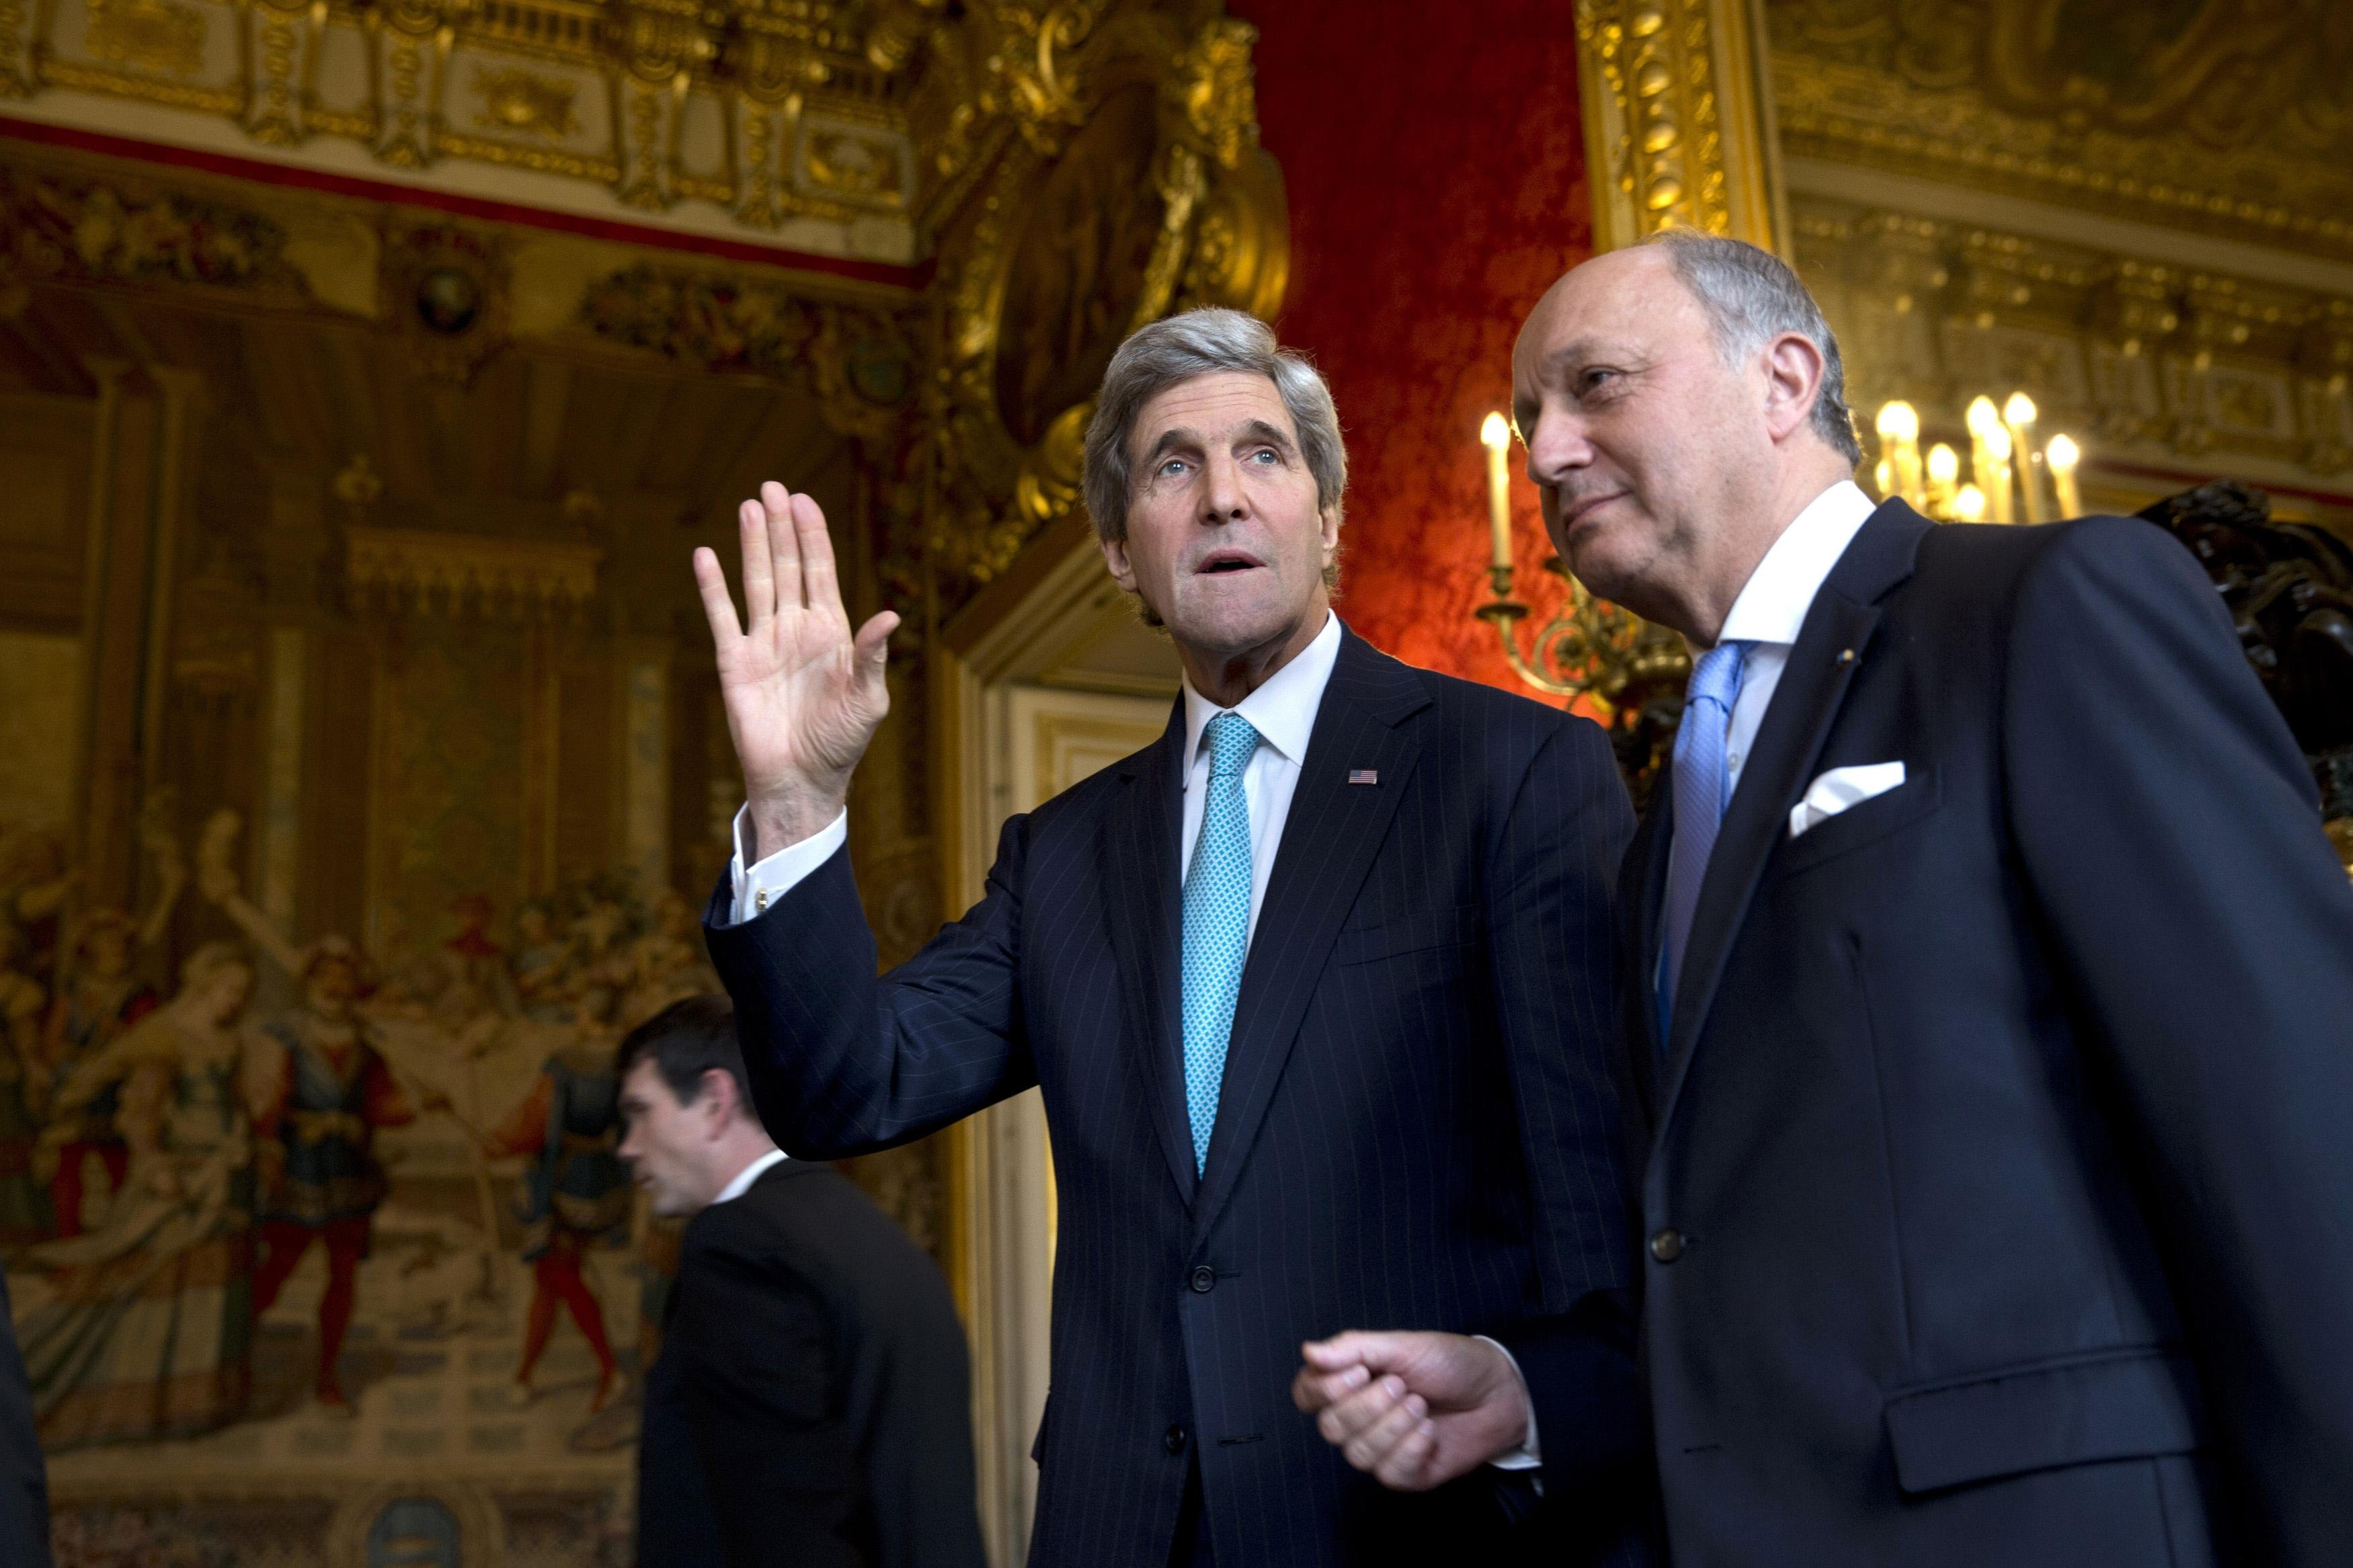 From left: U.S. Secretary of State John Kerry waves to the waiting media as he walks with French Foreign Minister Laurent Fabius for their meeting at the Quai d'Orsay in Paris, on March 30, 2014.